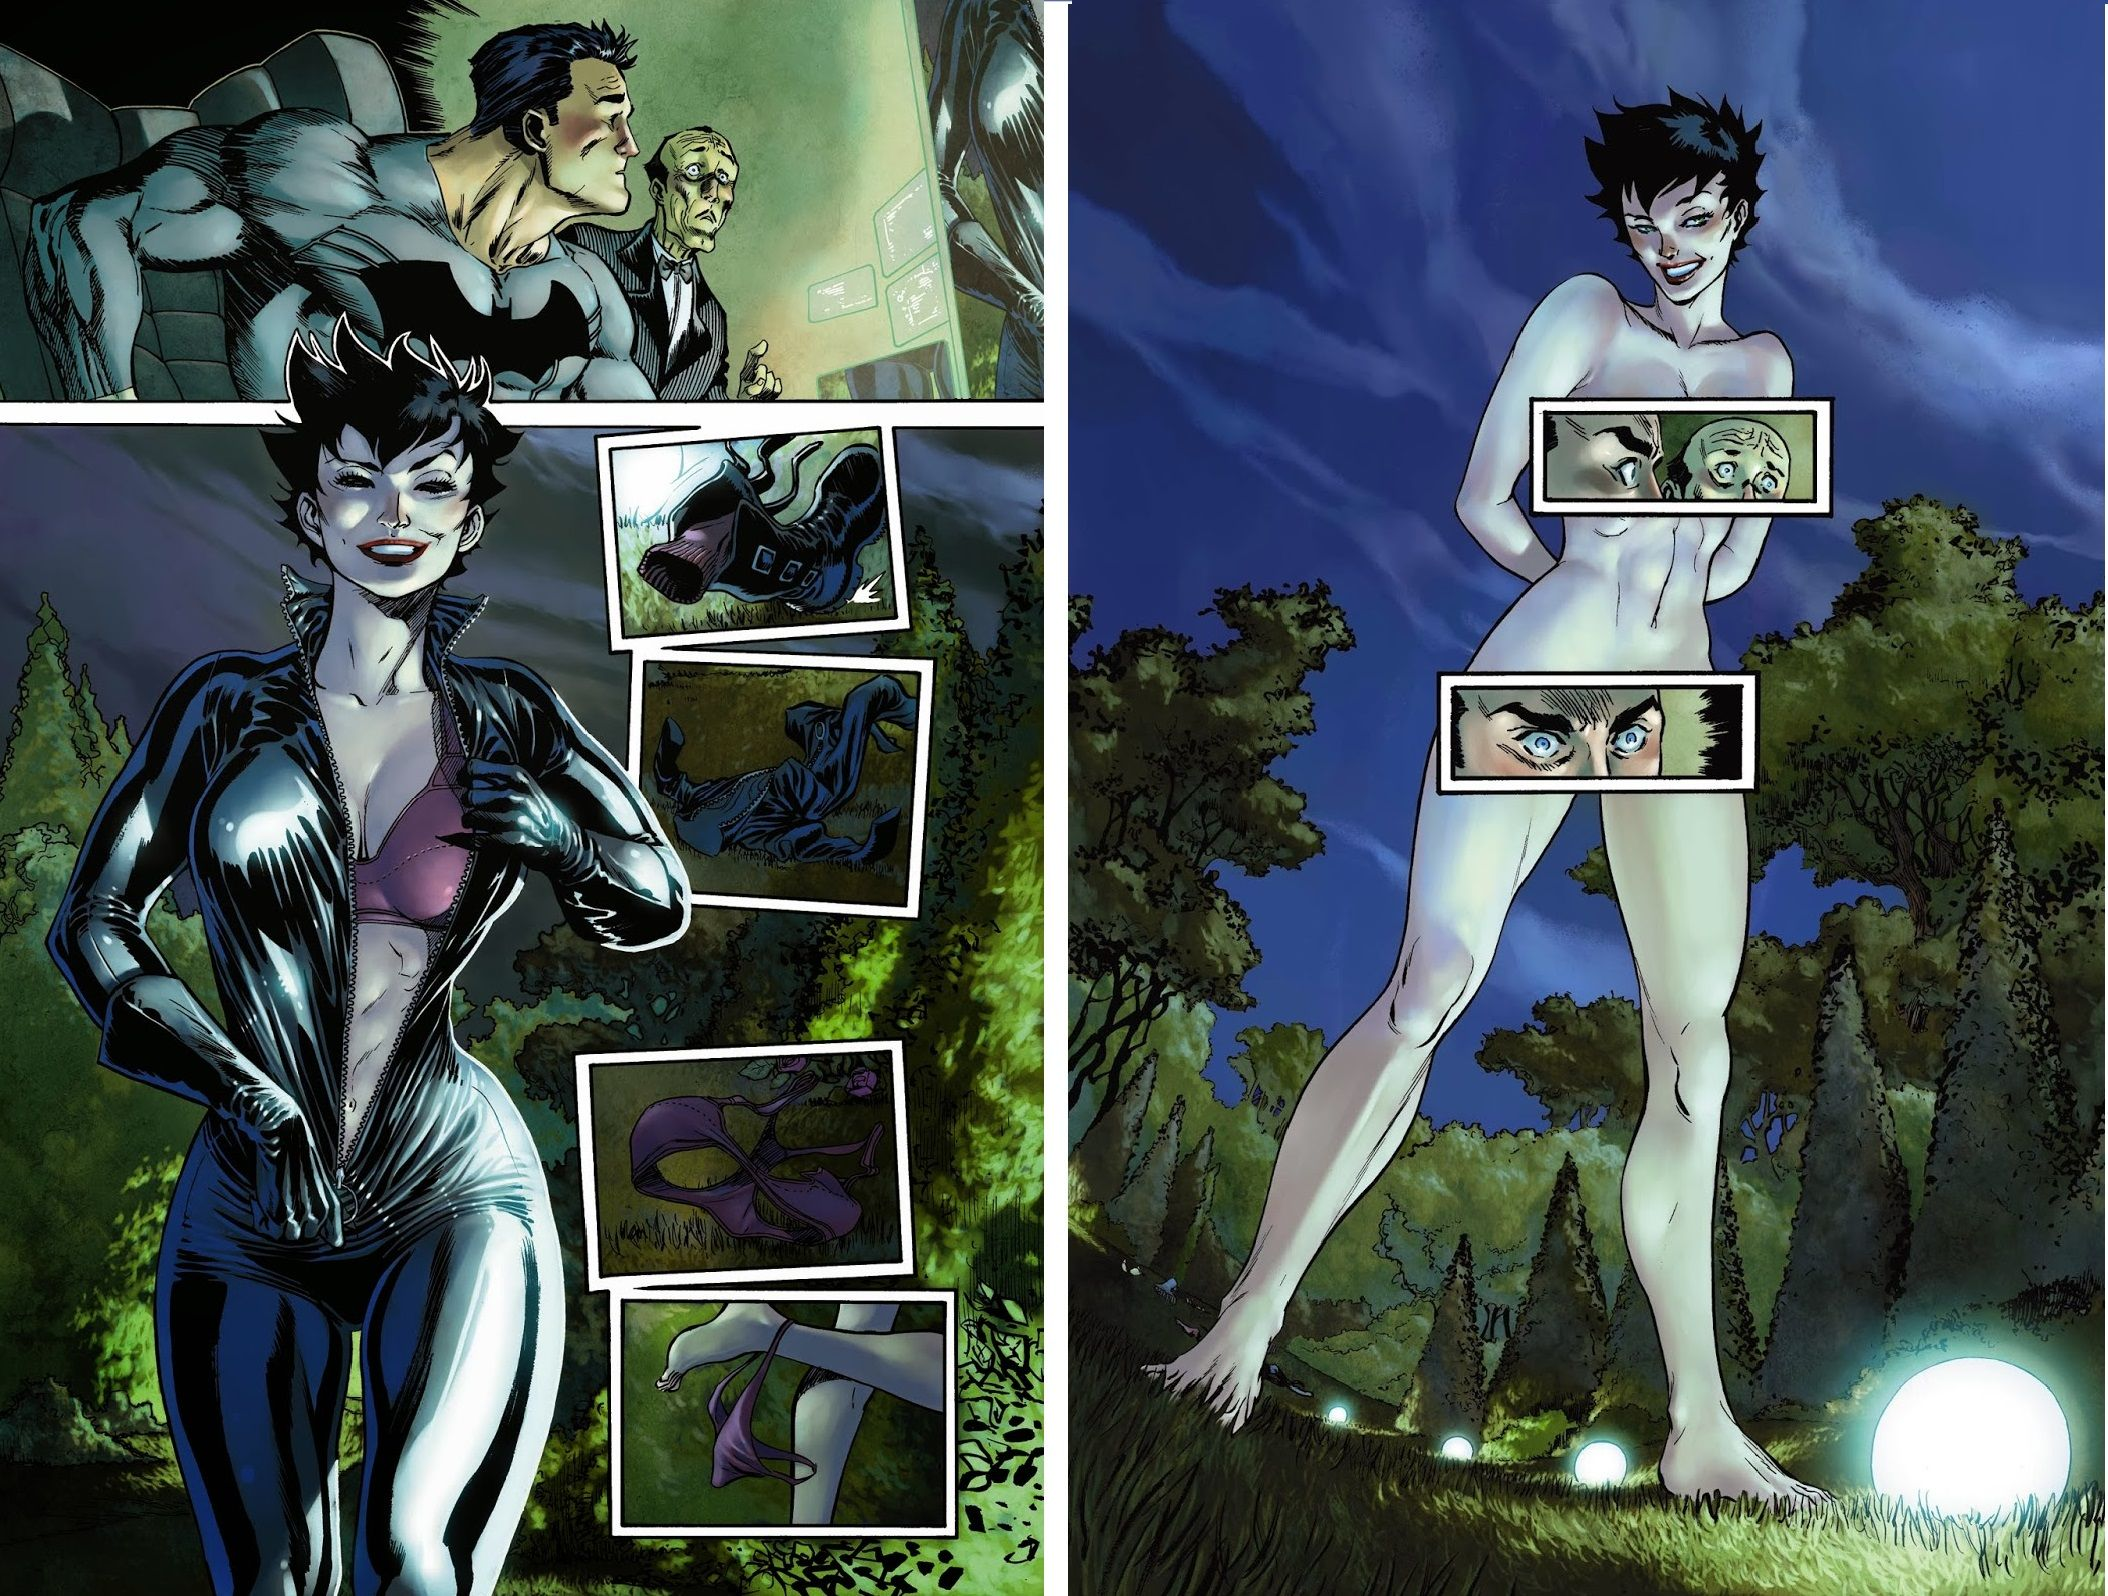 Catwoman Vol 4 #3 unseen pages - Art by Guillem March